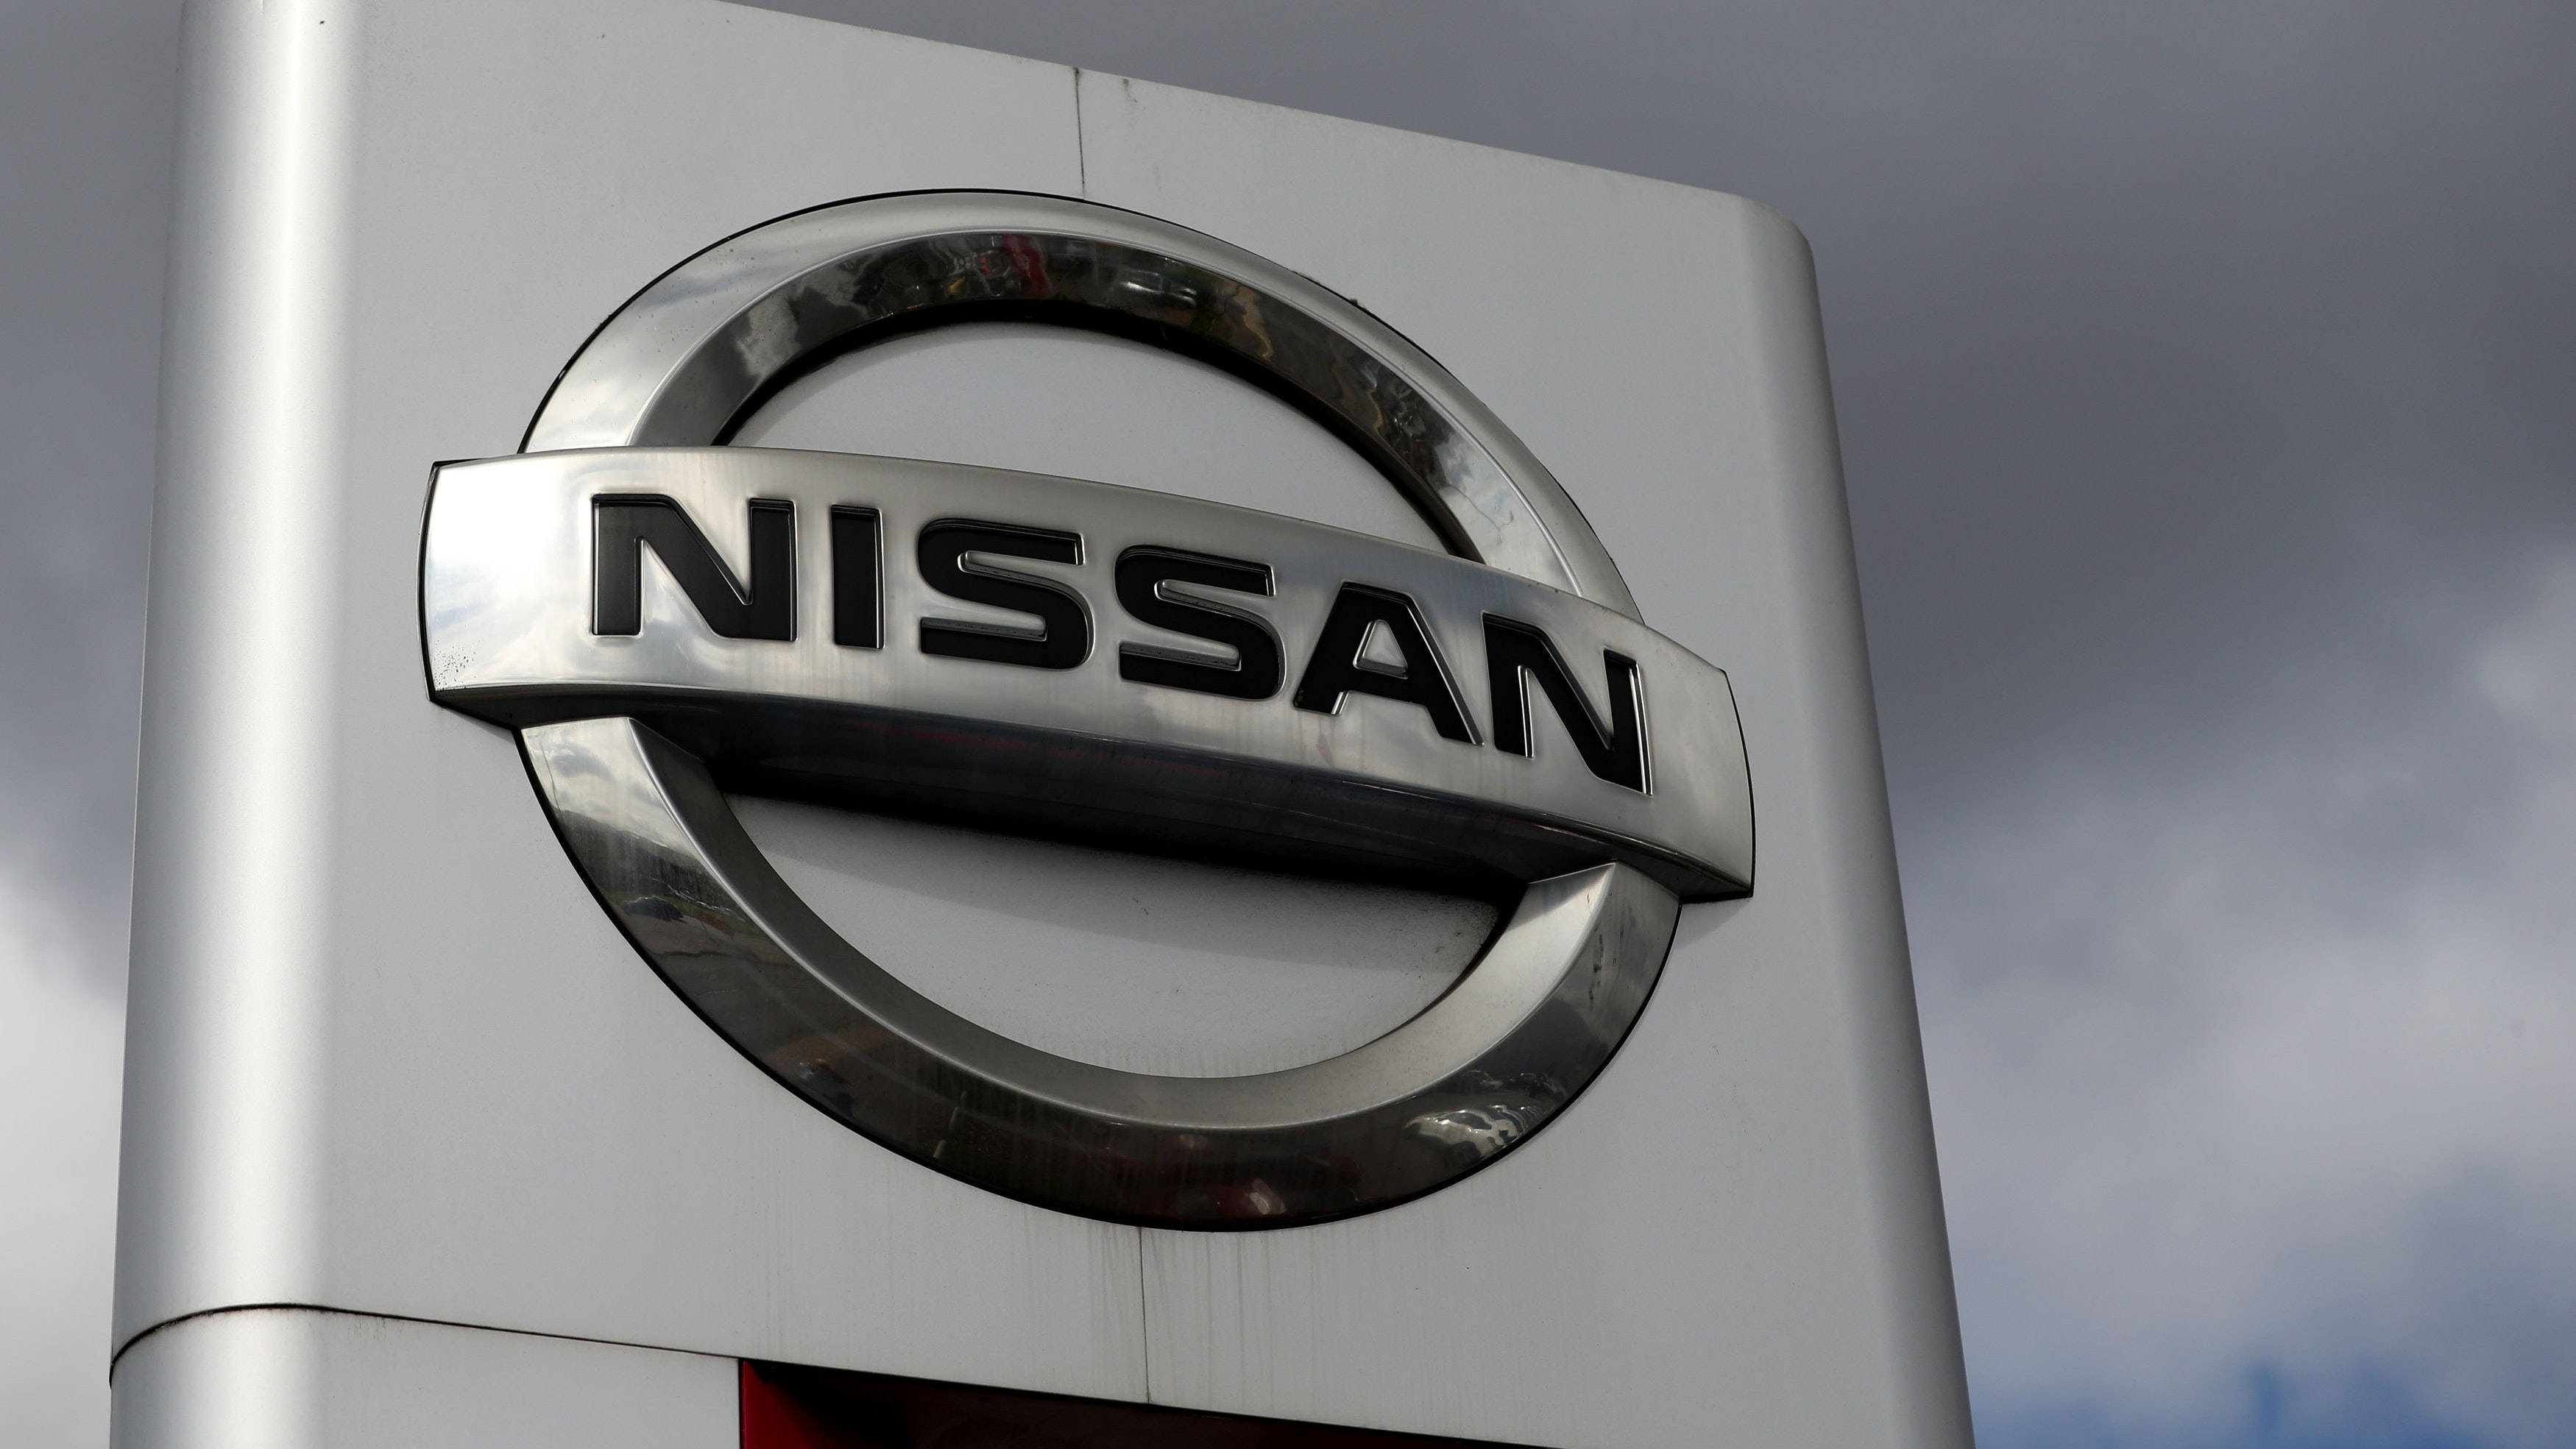 Nissan cancels plans to make X-Trail SUV in the UK